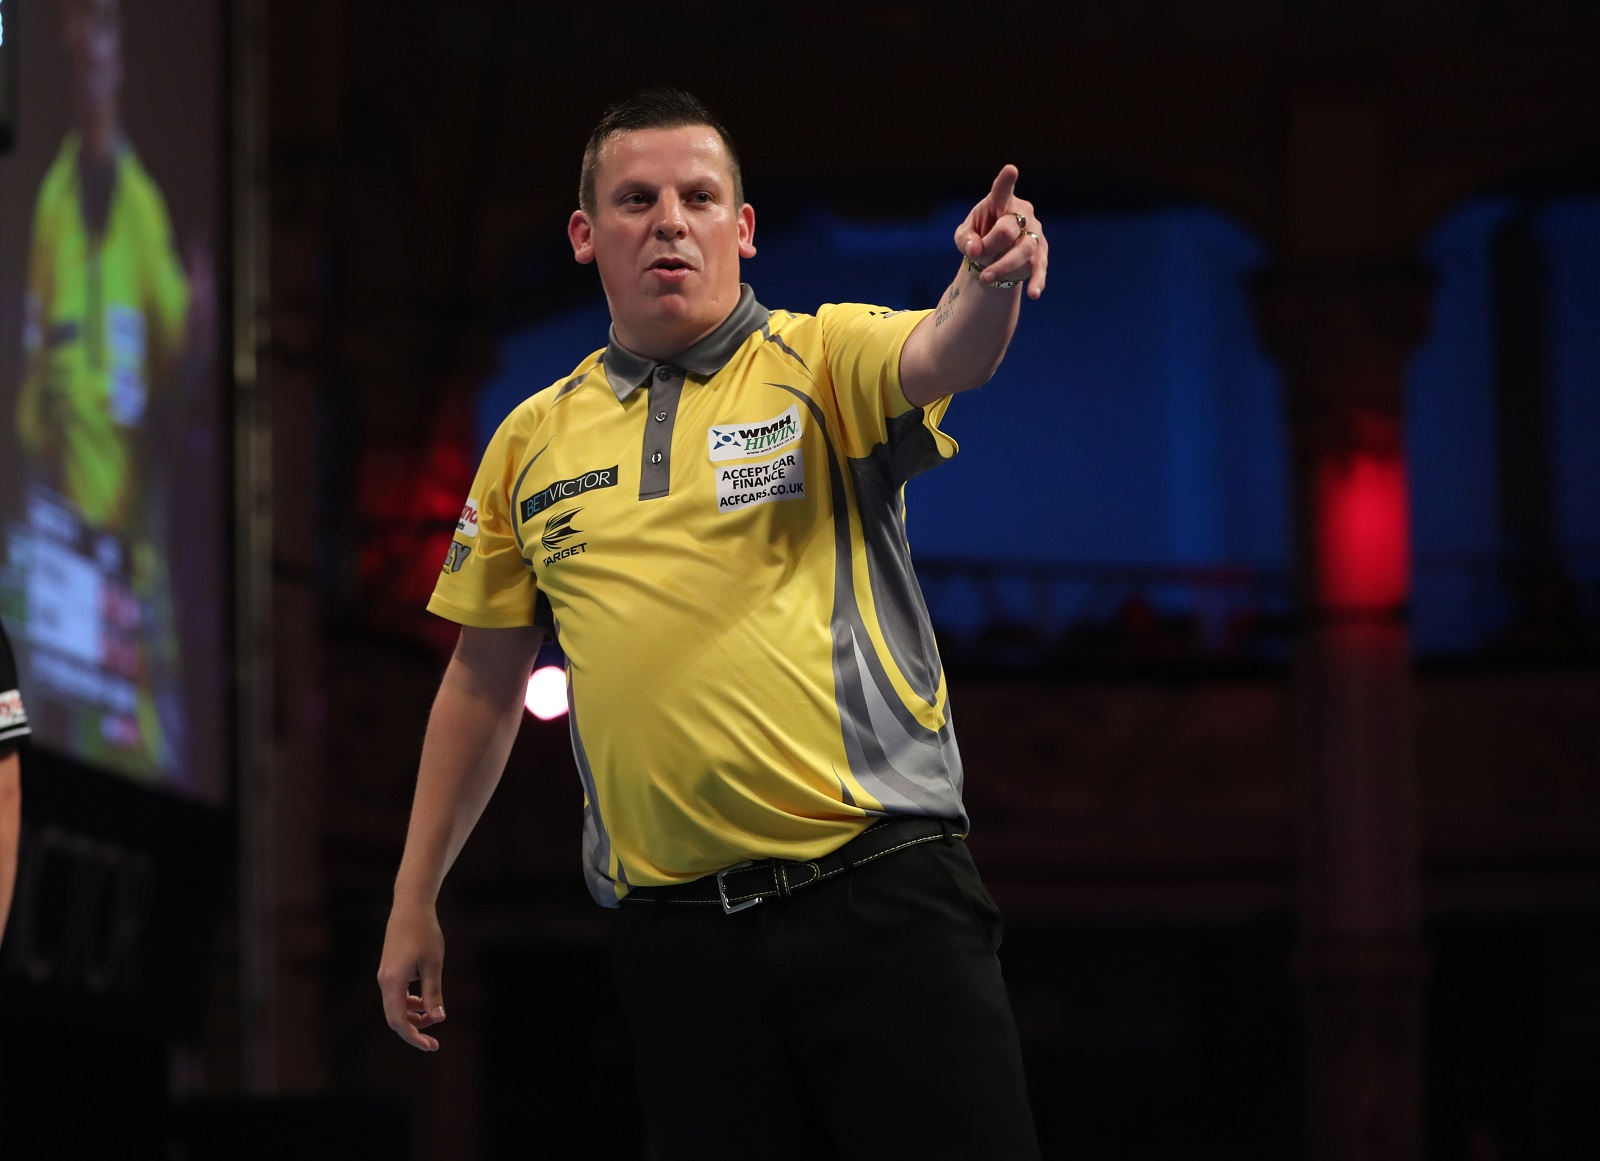 Dave Chisnall, who won his first title of the year in Barnsley. Picture by Lawrence Lustig